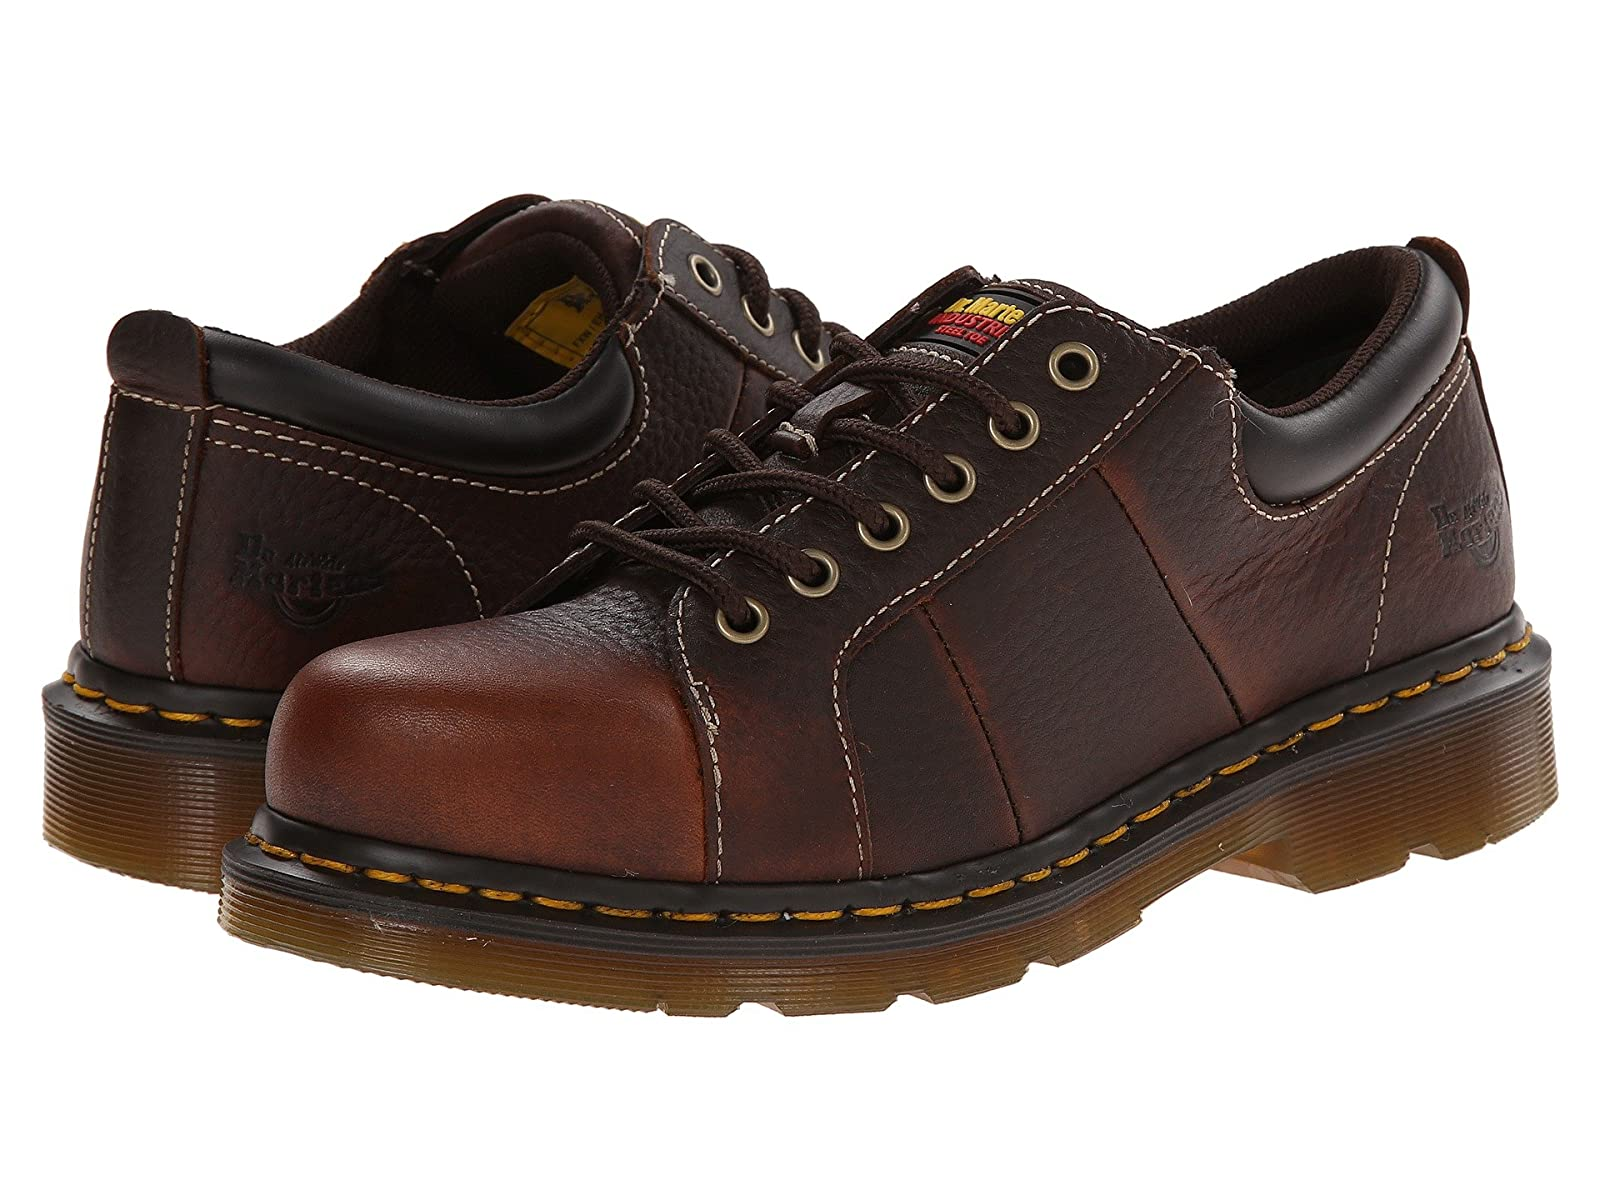 Dr. Martens Mila STCheap and distinctive eye-catching shoes